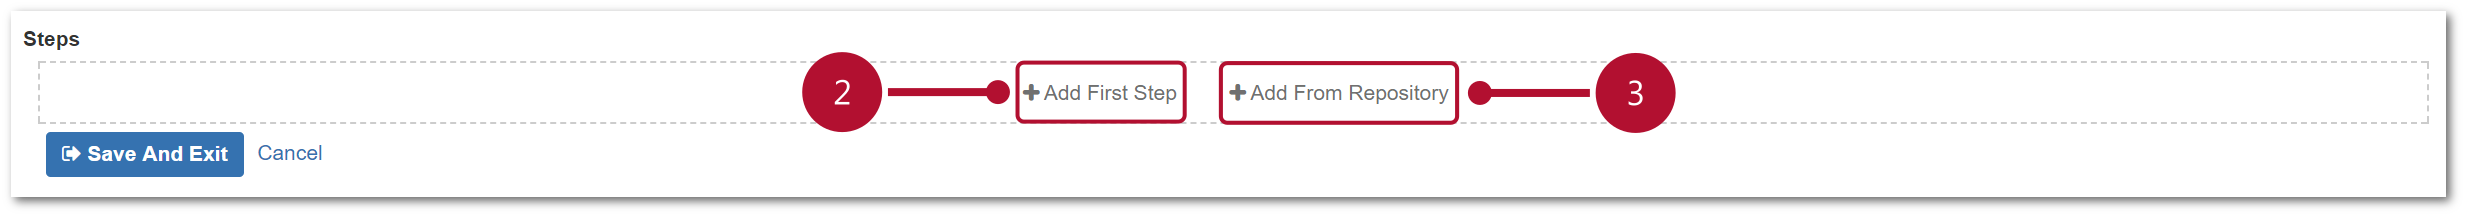 TestFLO Cloud: Buttons for adding Steps